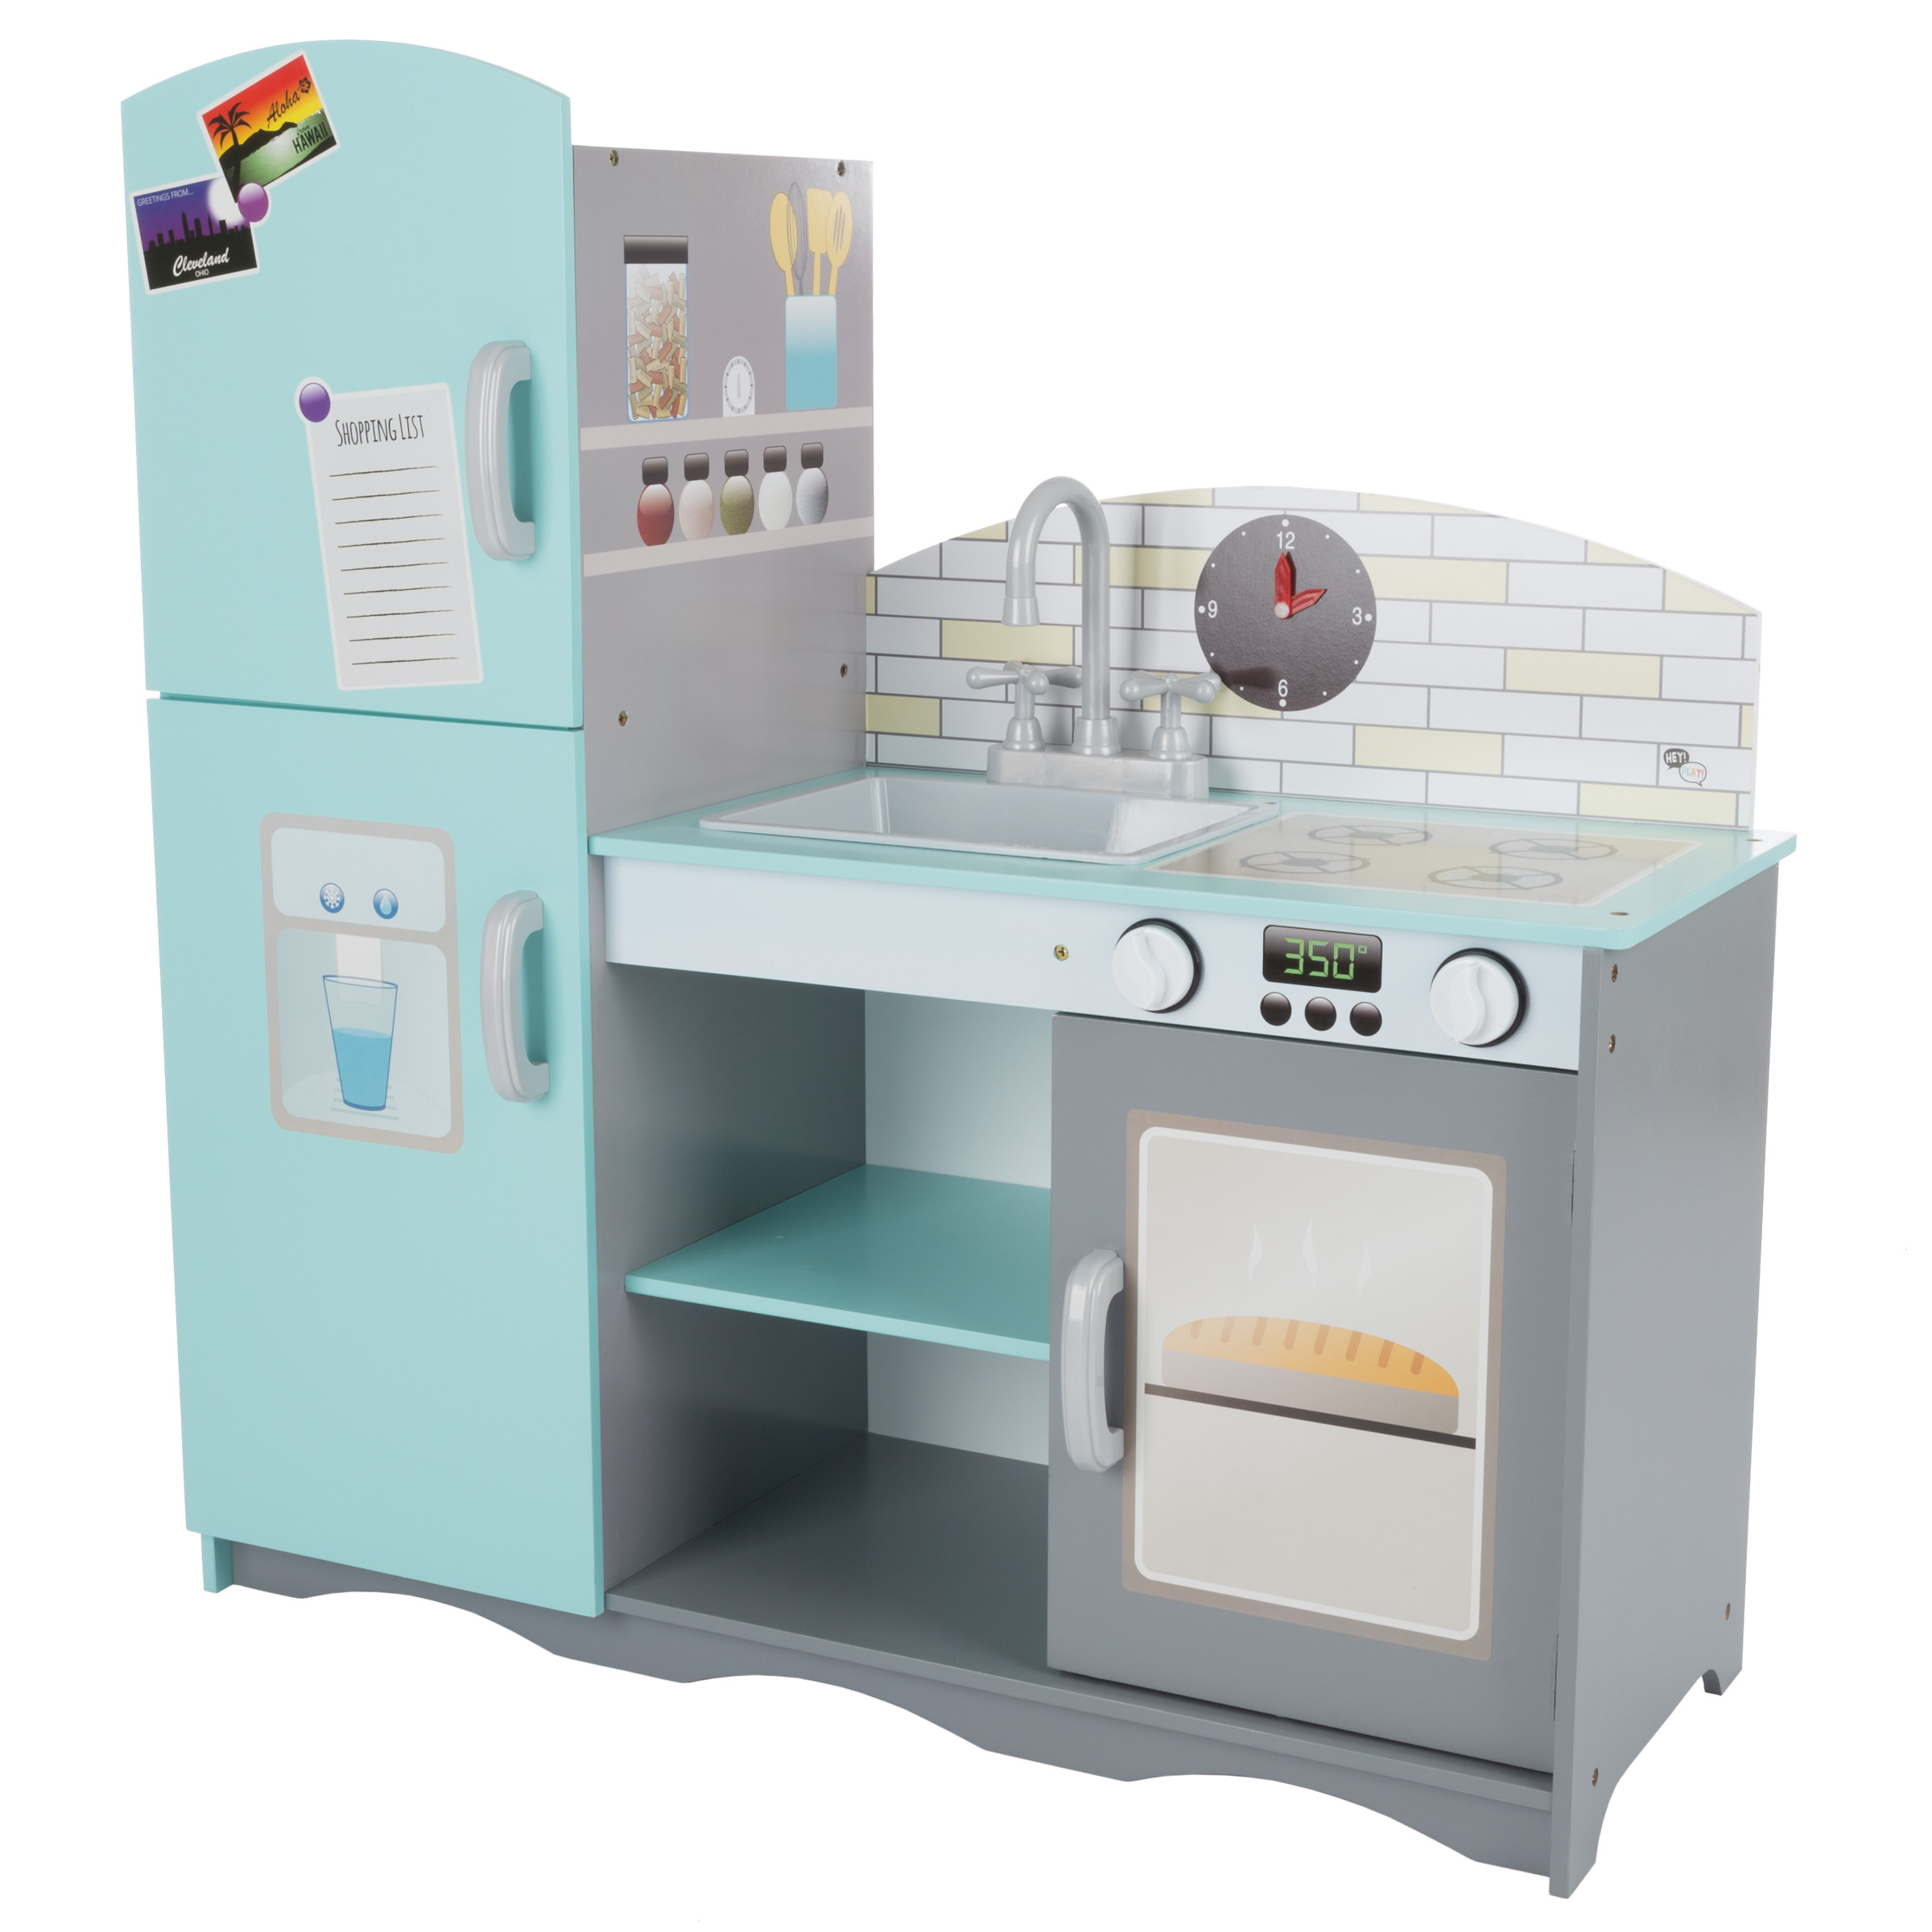 Kids Toy Kitchen Set- Fun Pretend Play Home Kitchen Playset with Oven, Sink, Stove, Refrigerator Freezer and More for Boys and Girls By Hey! Play!